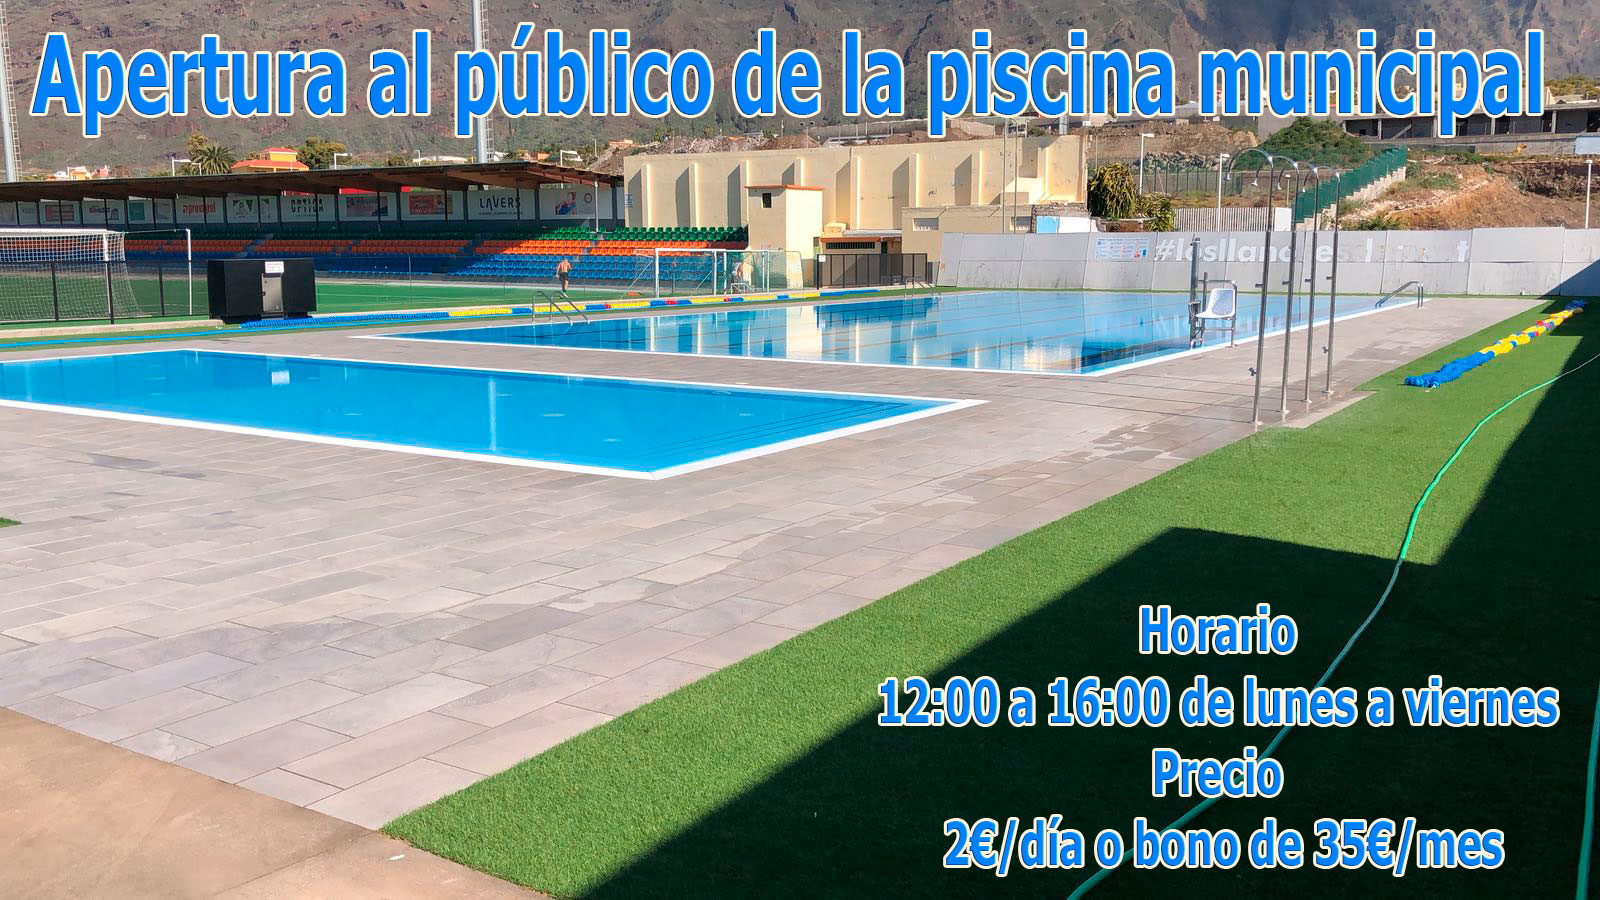 Apertura al público de la piscina municipal